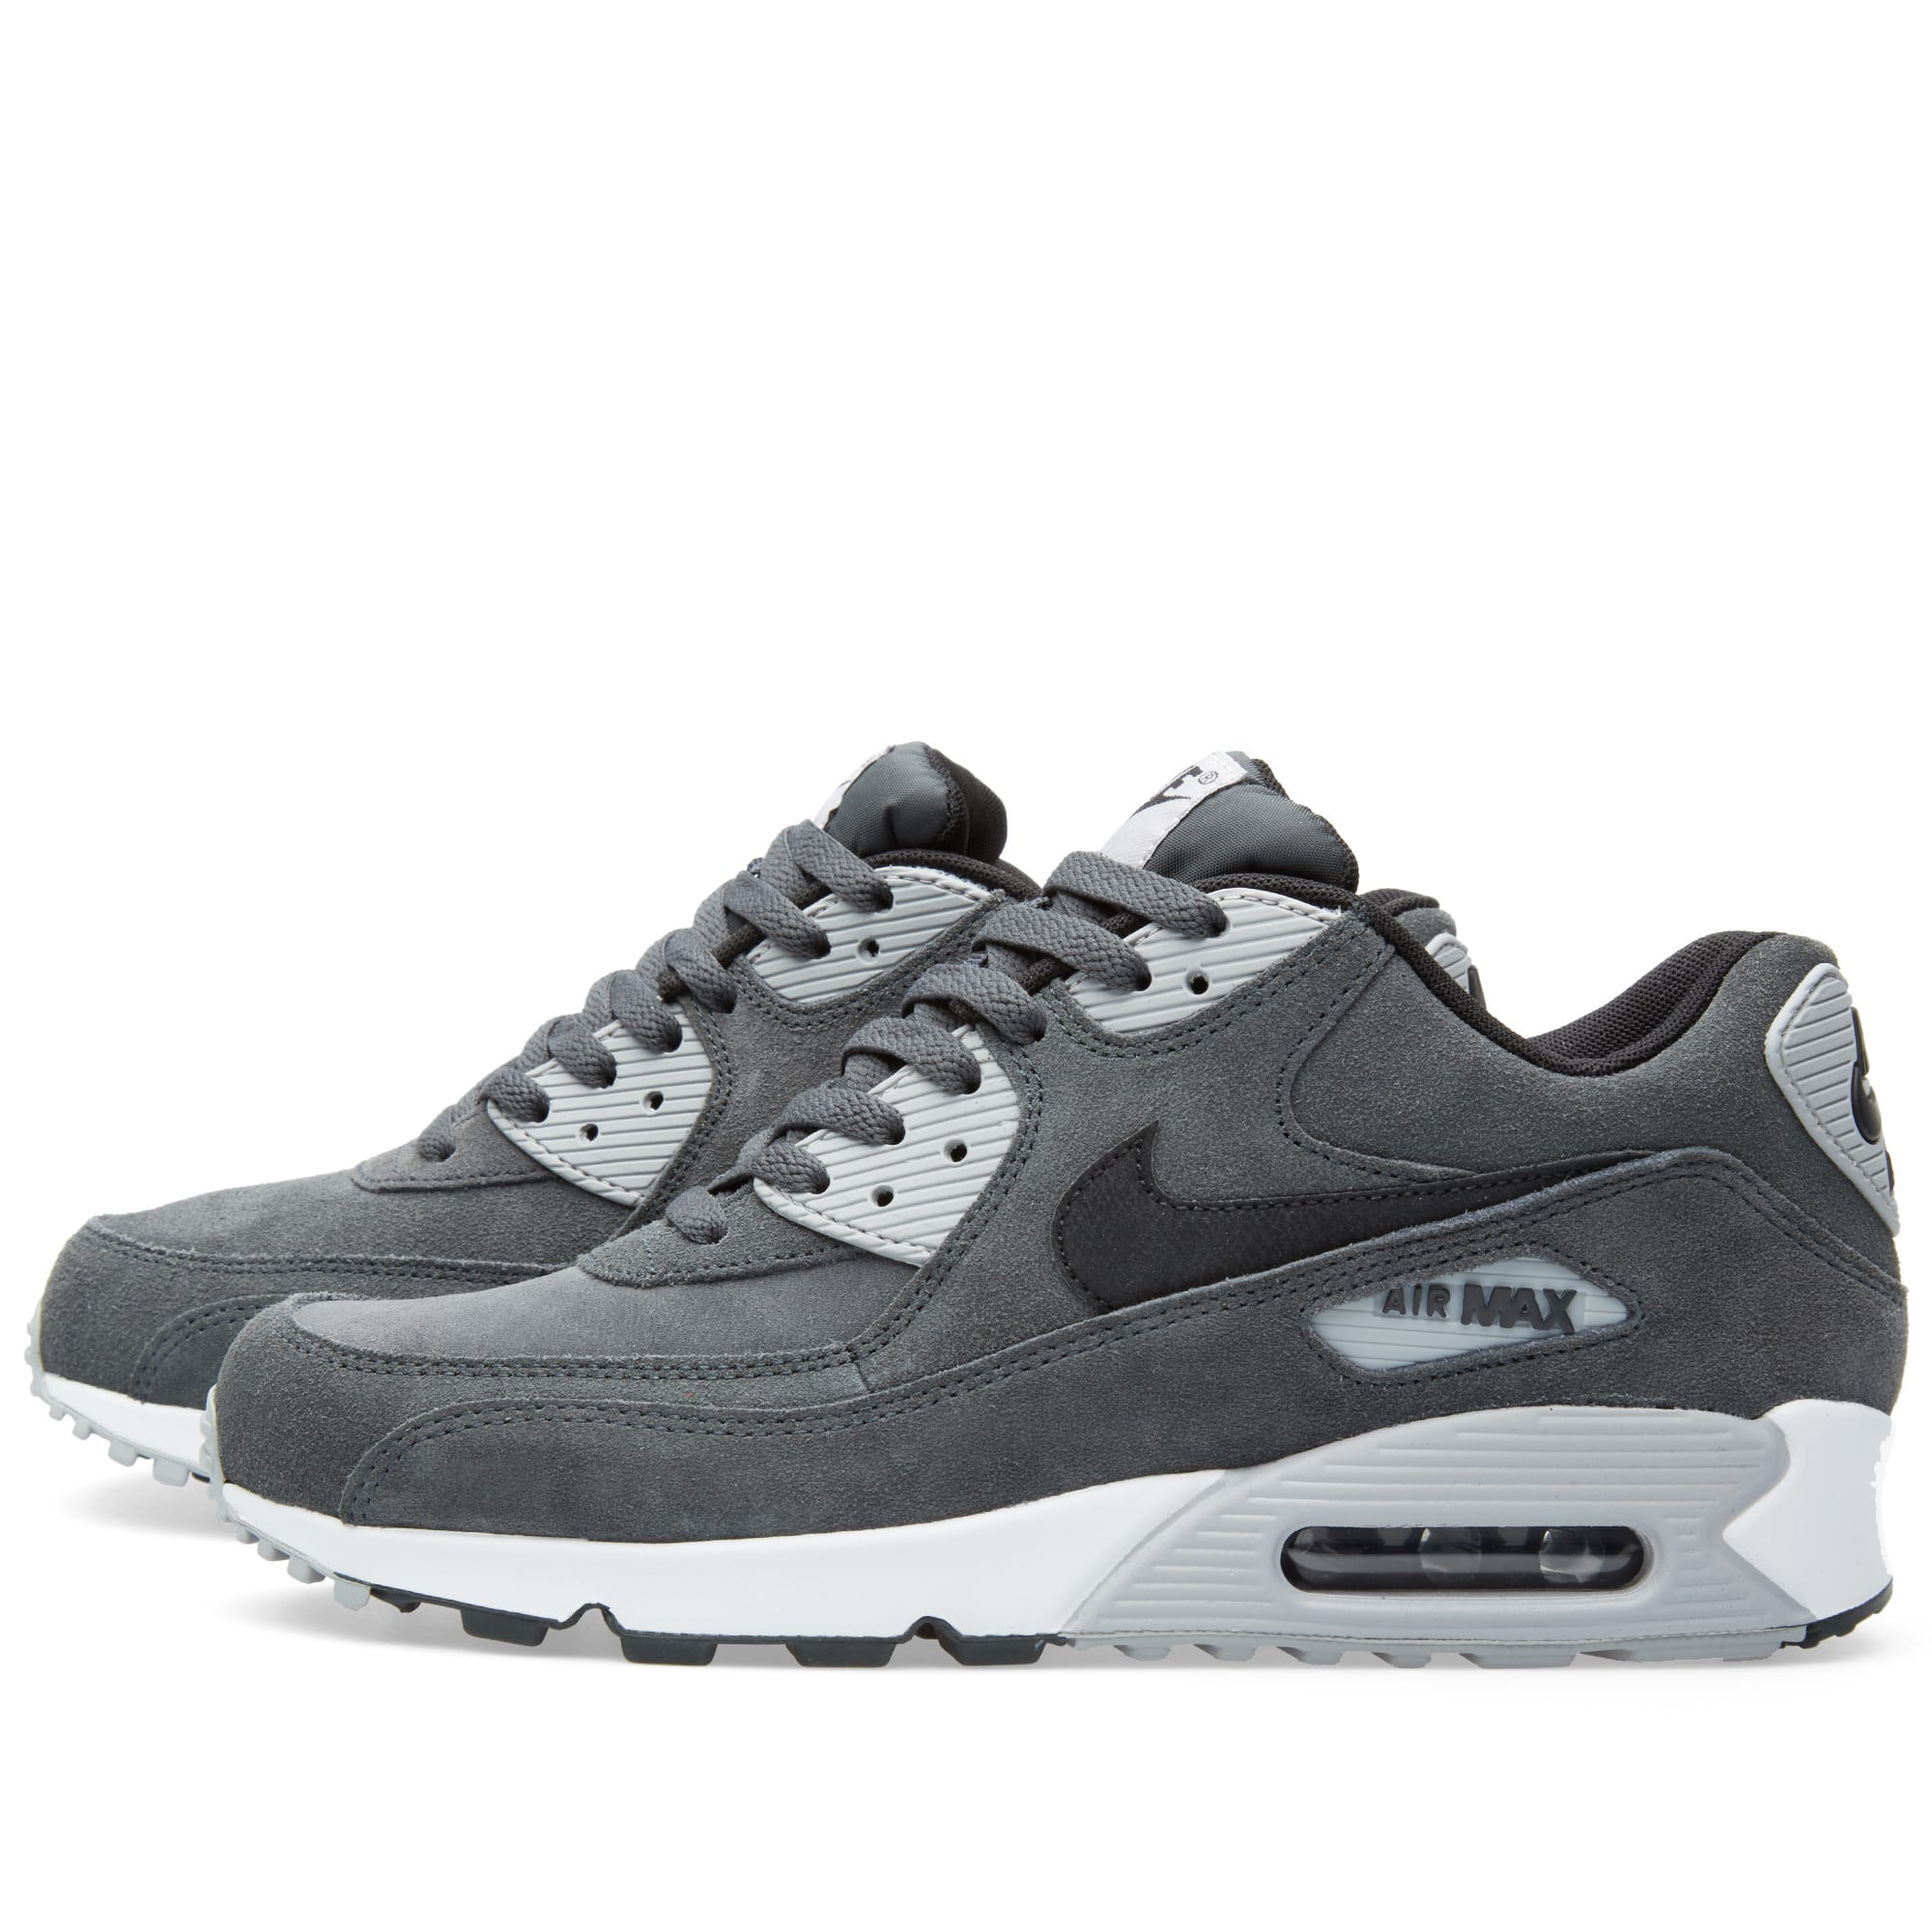 quality design 5ded5 408c2 Nike Air Max 90 Leather Anthracite, Black   Wolf Grey   END.